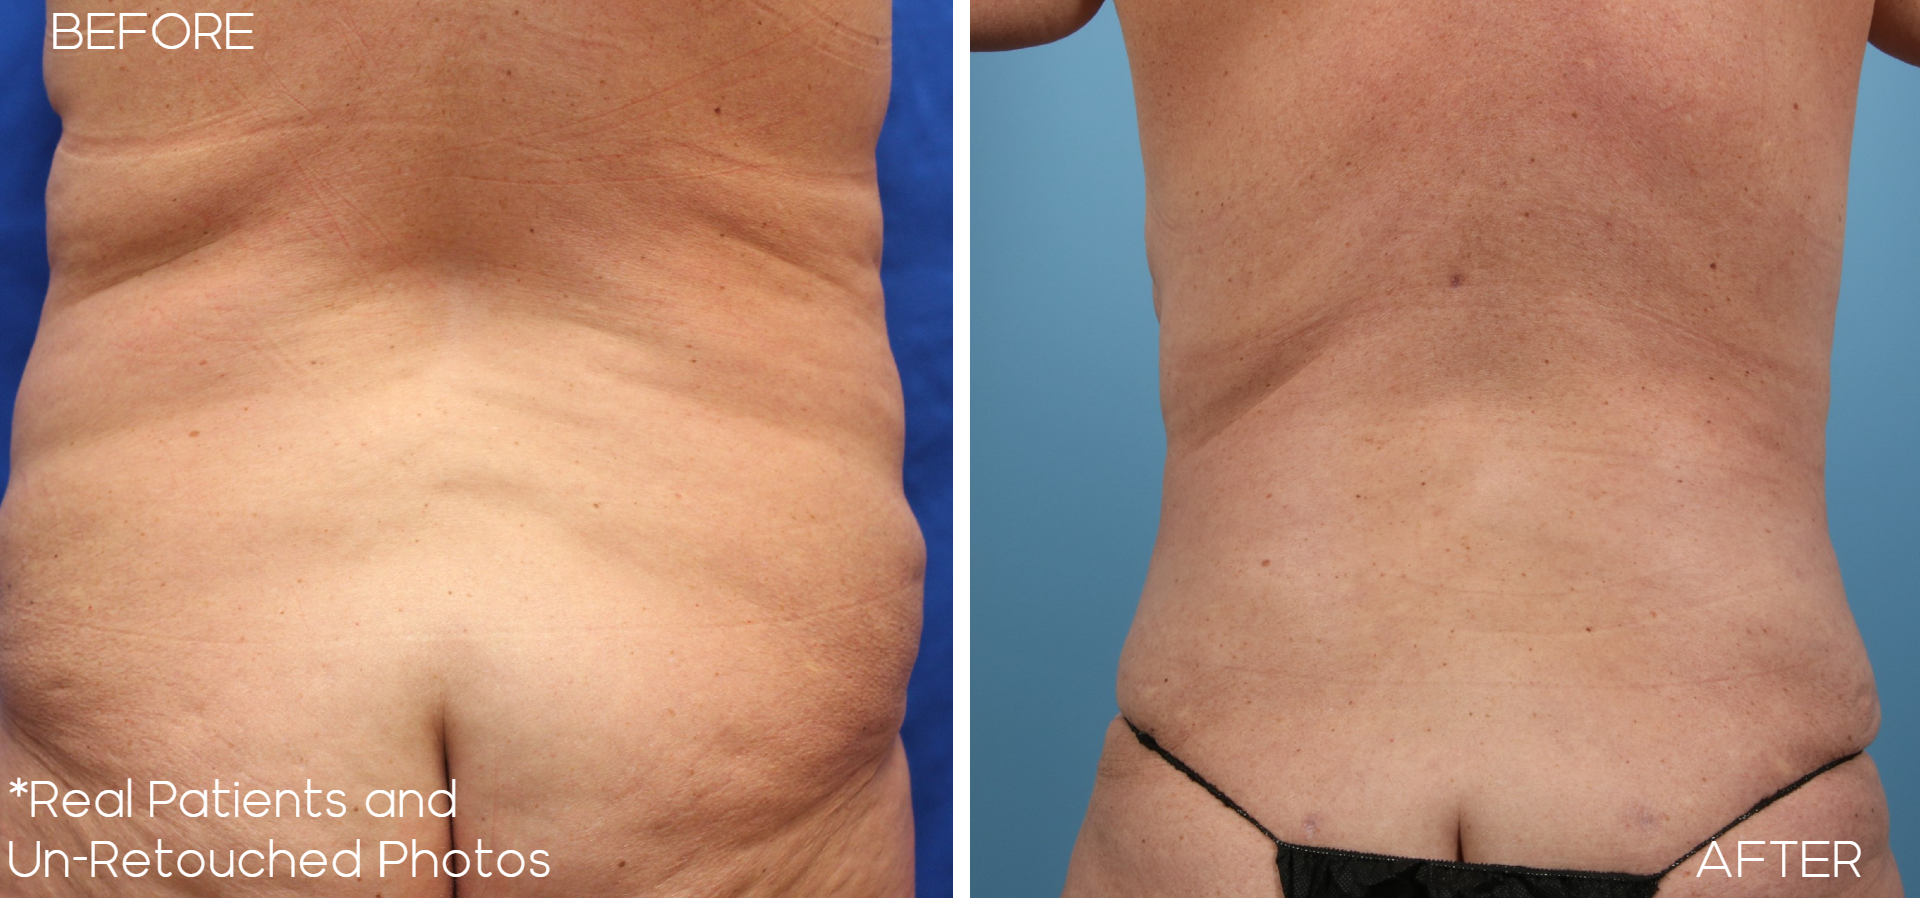 Case-8-Lipo-Before-and-After